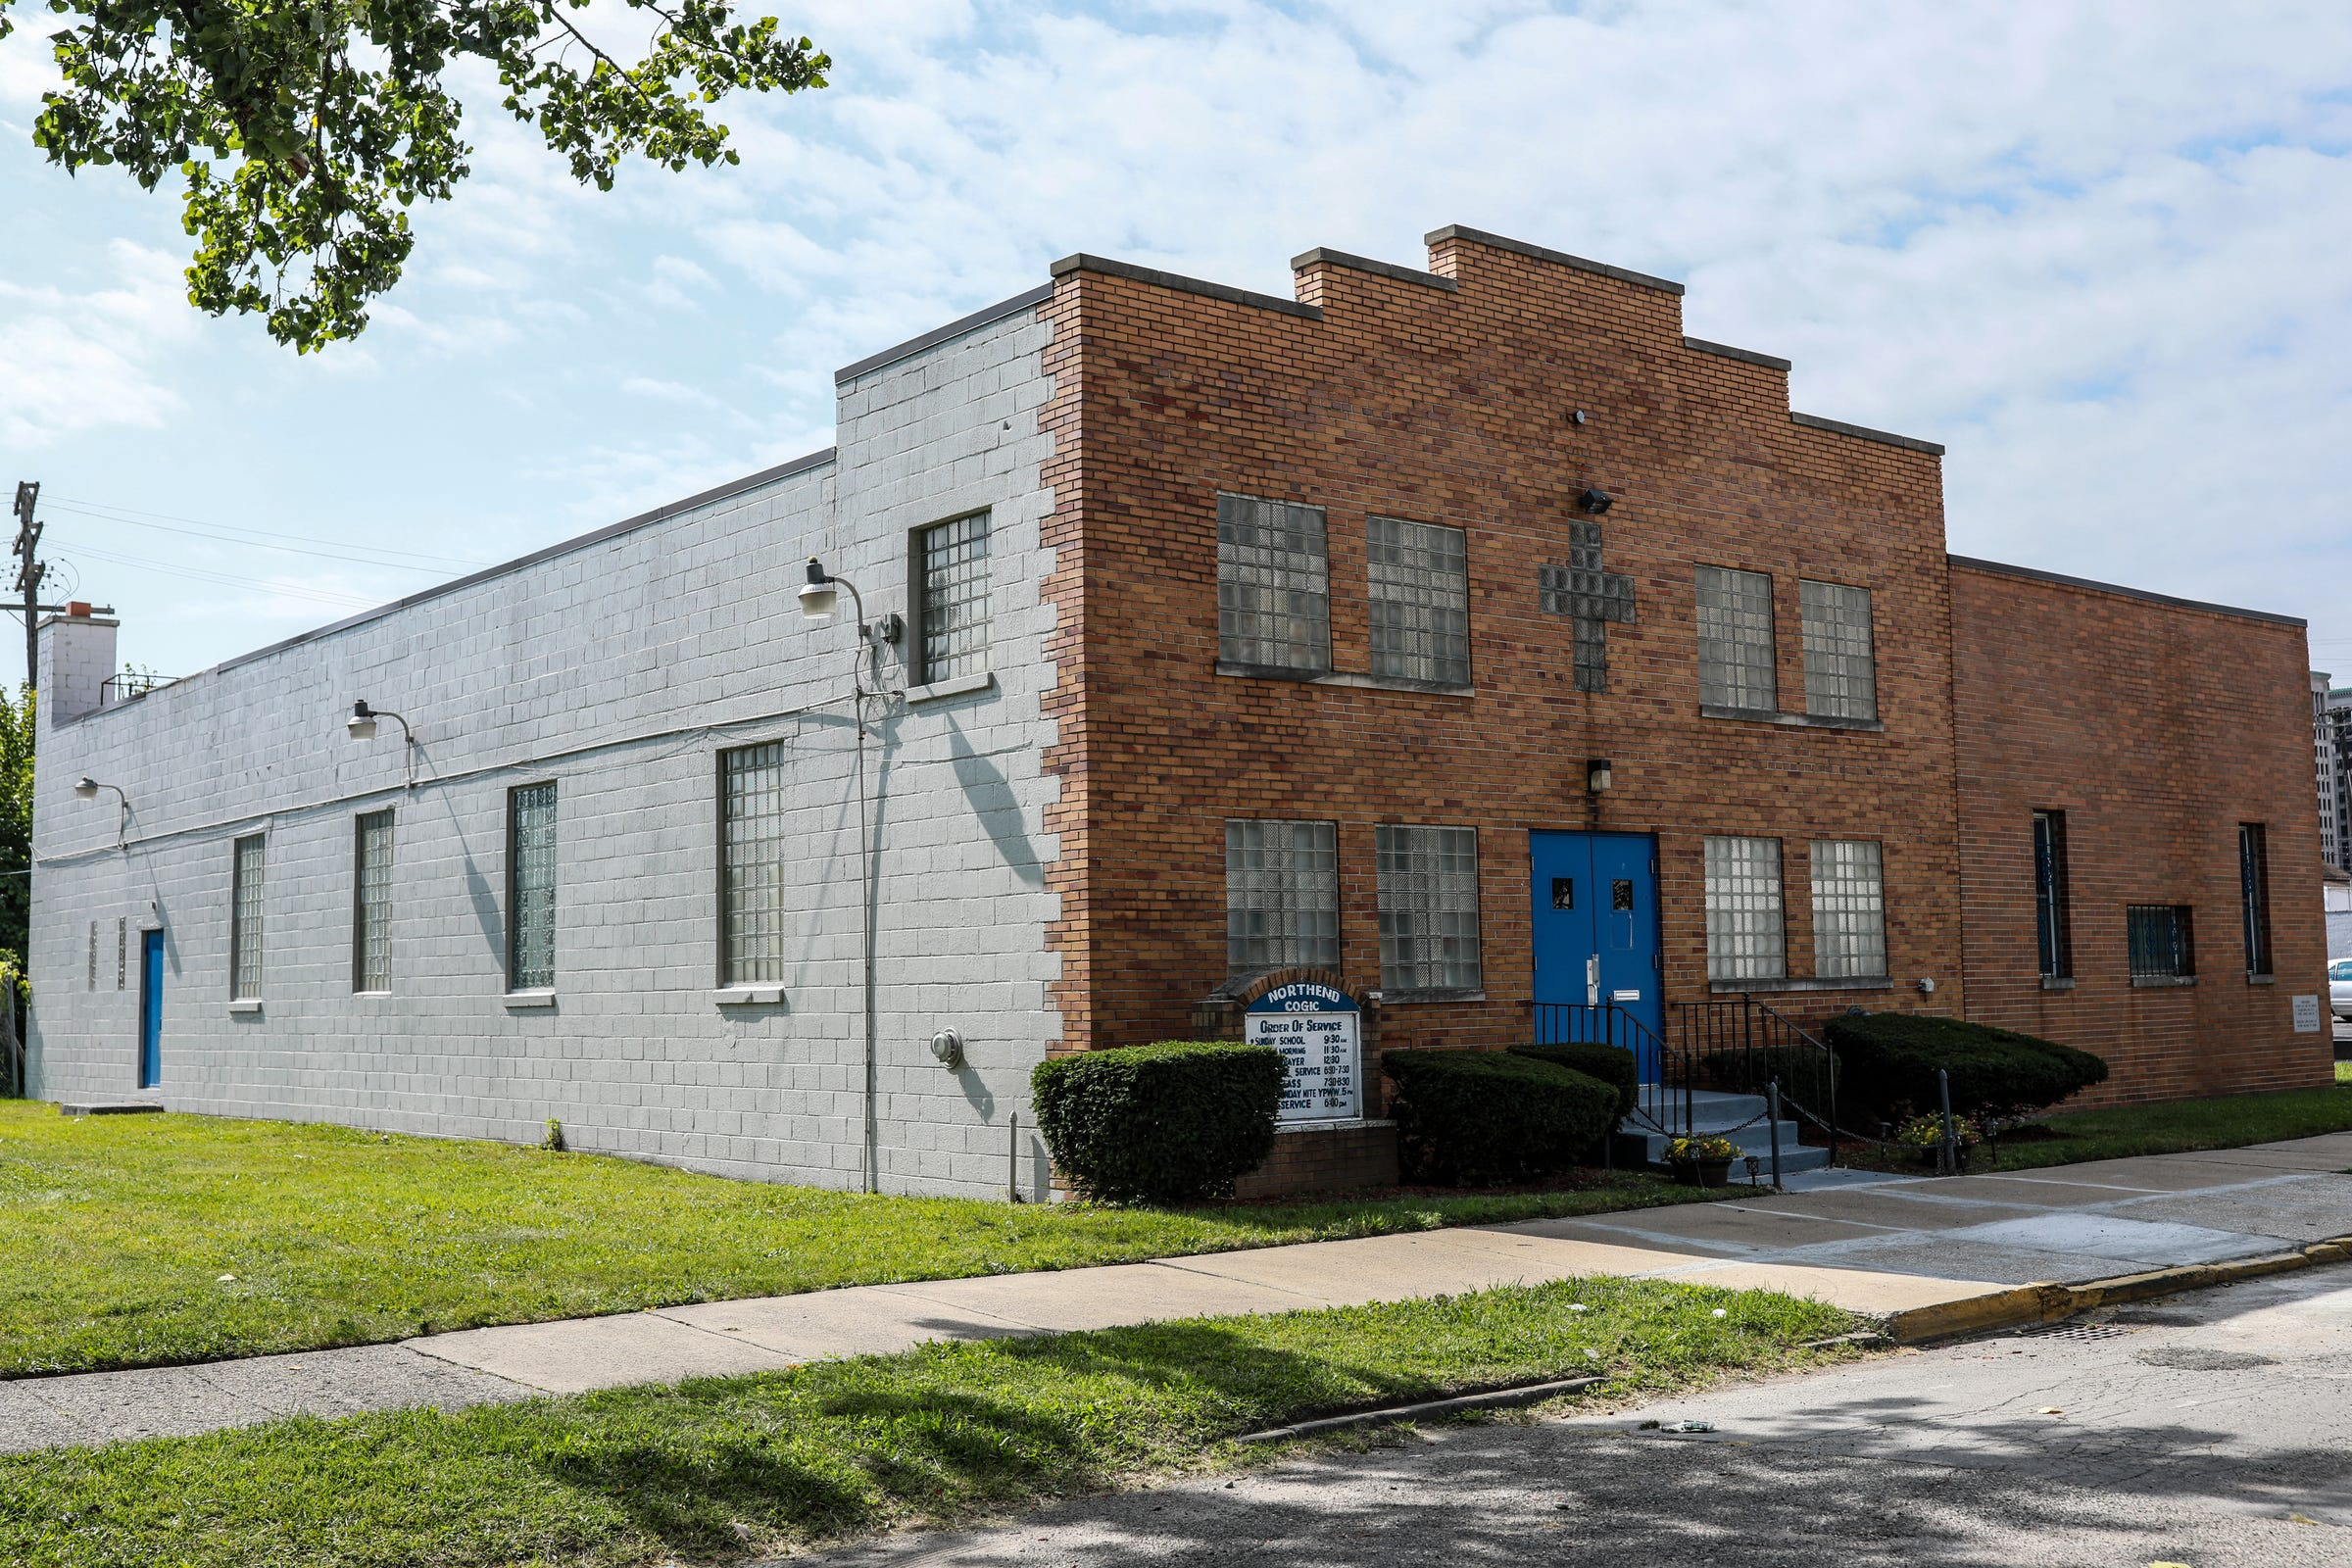 The Northend Church of God and Christ has been the church home of Bessie Stallworth since she moved to Detroit in 1950, during the second wave of the Great Migration from the south and has been committed to the church as much as she has been to Detroit and the family she raised in the city.